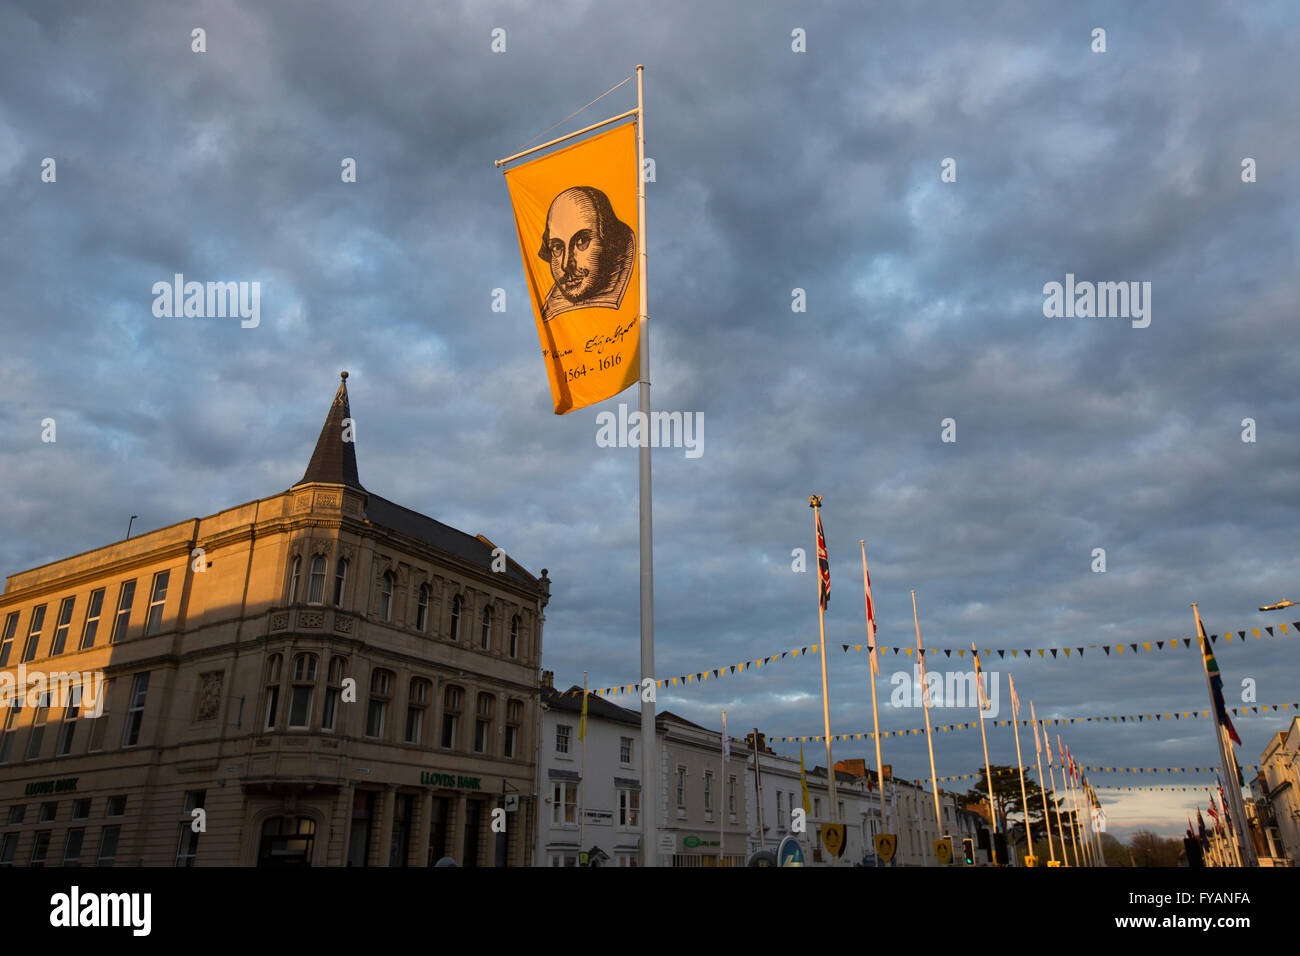 A flag showing Shakespeare's face flies over the centre of Stratford-upon-Avon to commemorate the 400th anniversary - Stock Image